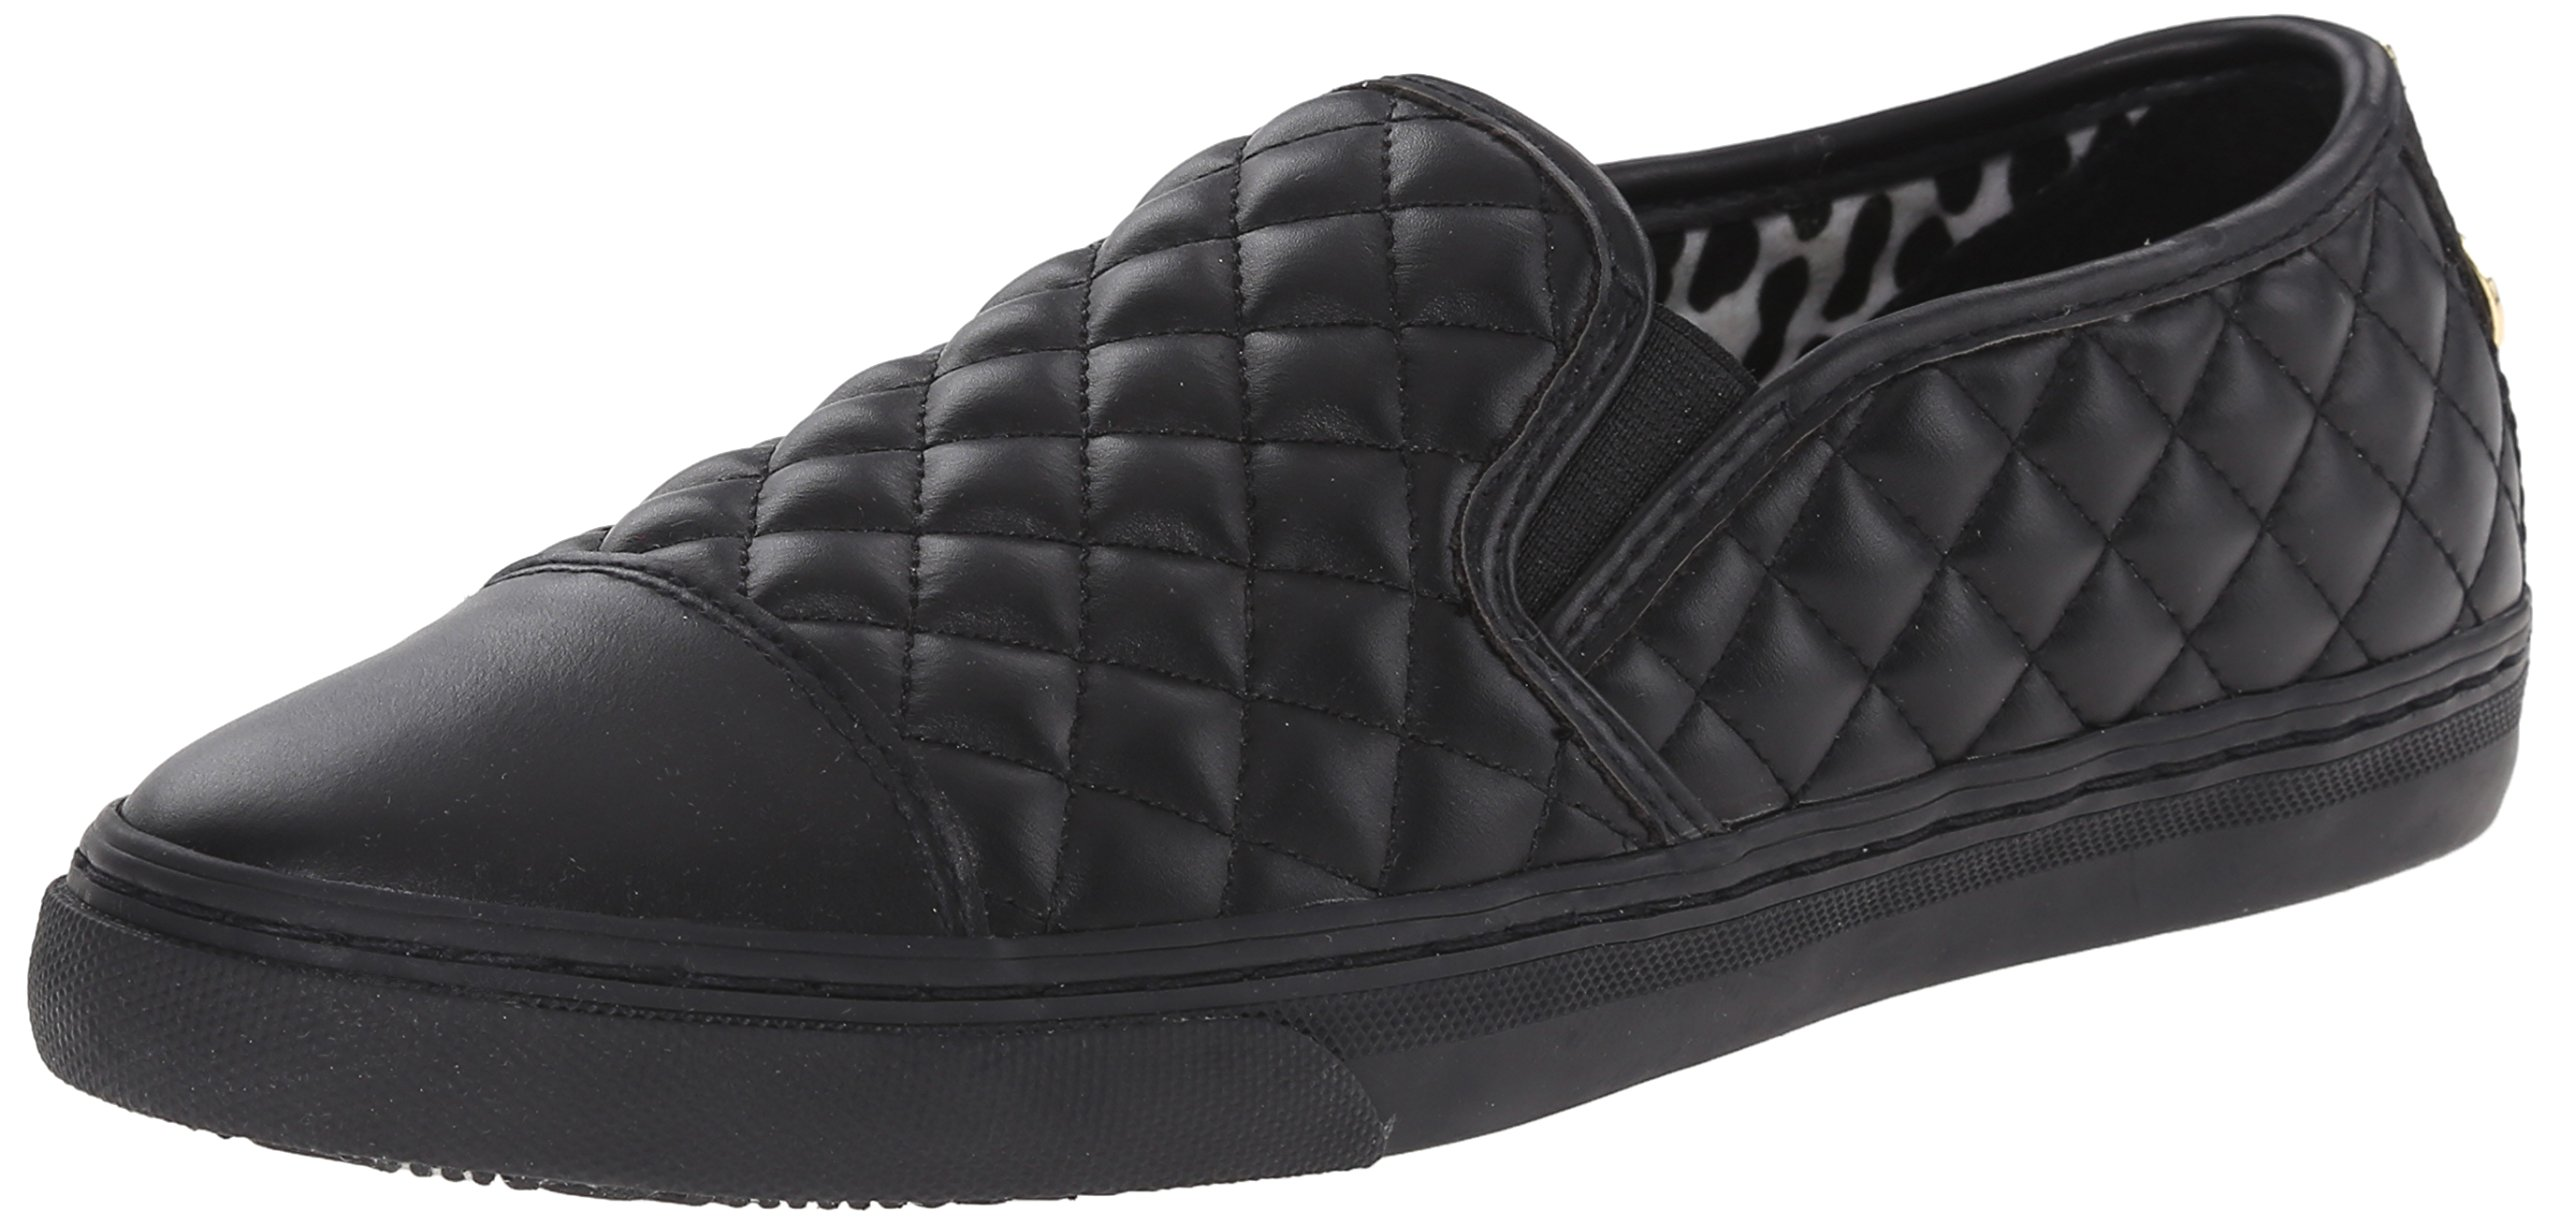 Geox Women's New Club Low Top Fashion Sneaker, Black, 37 BR/7 M US